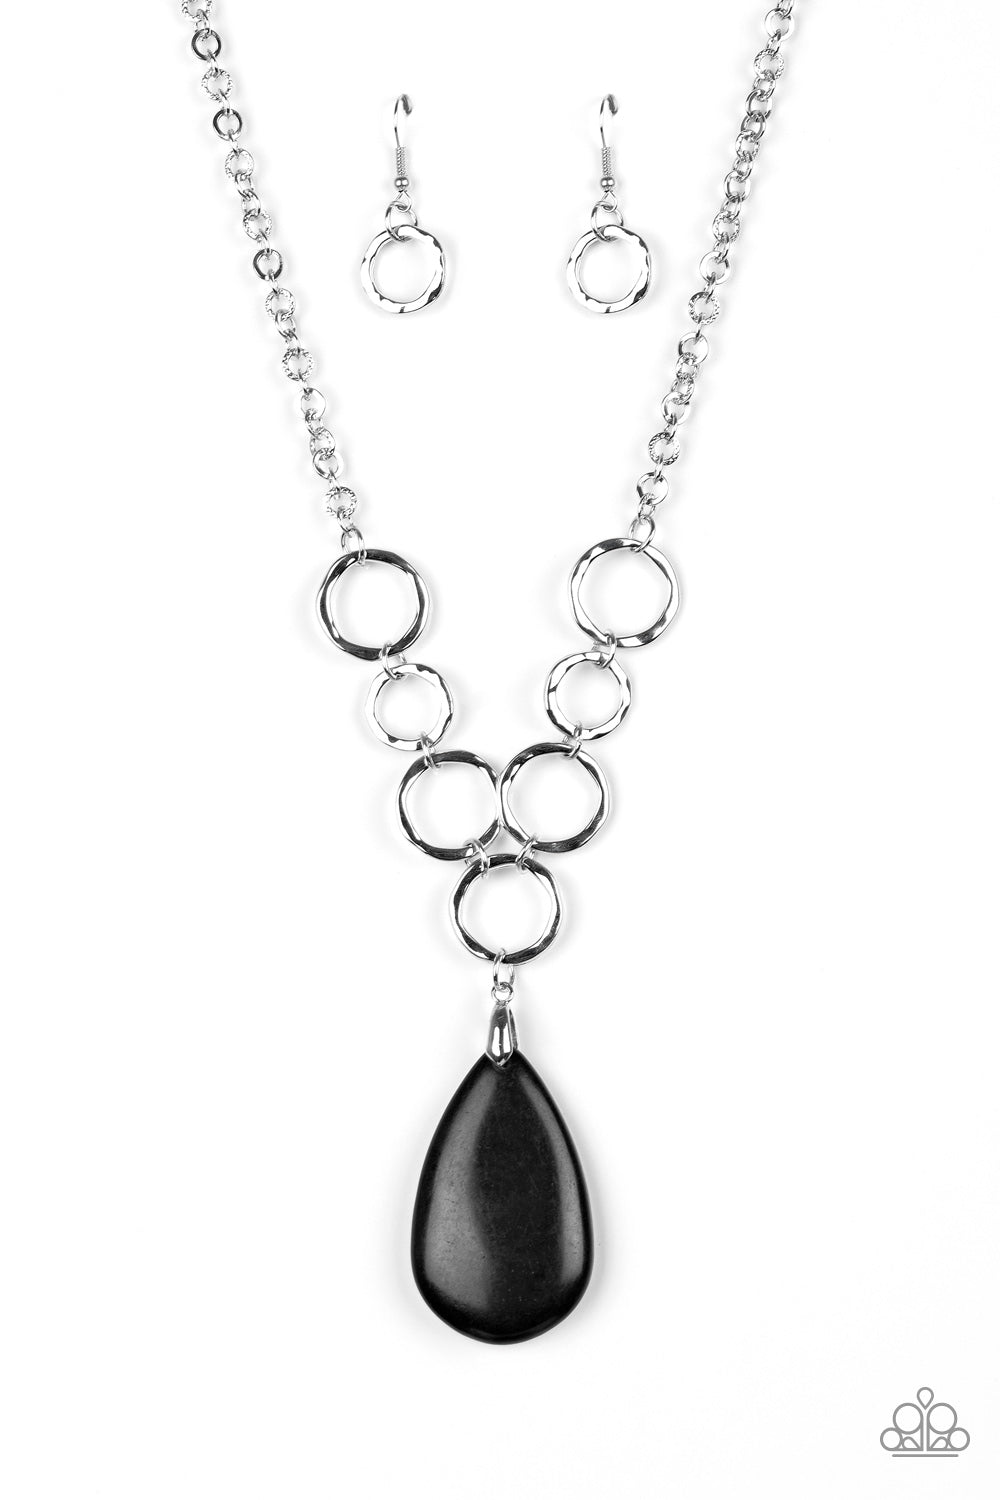 Living on a PRAIRIE Black Silver Necklcace Paparazzi